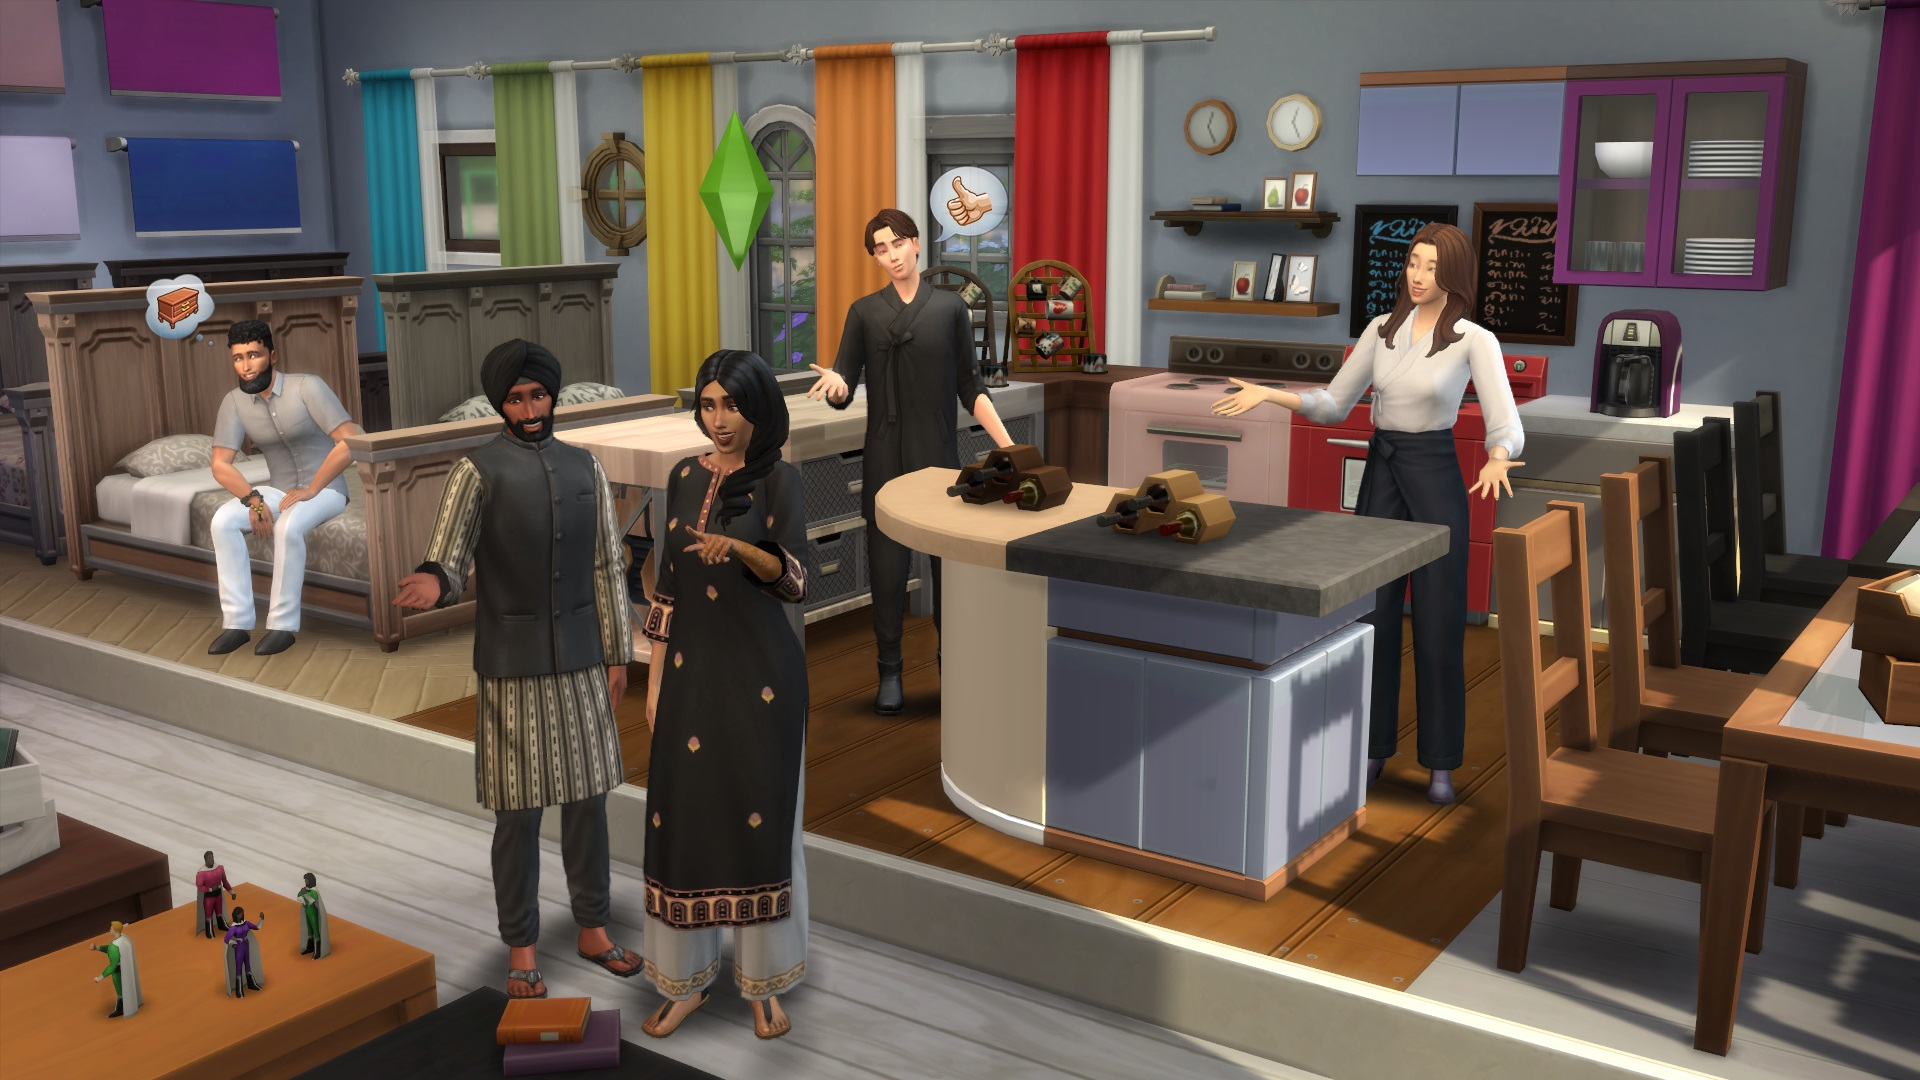 Sims 4 gets more much-needed diversity - but at a price